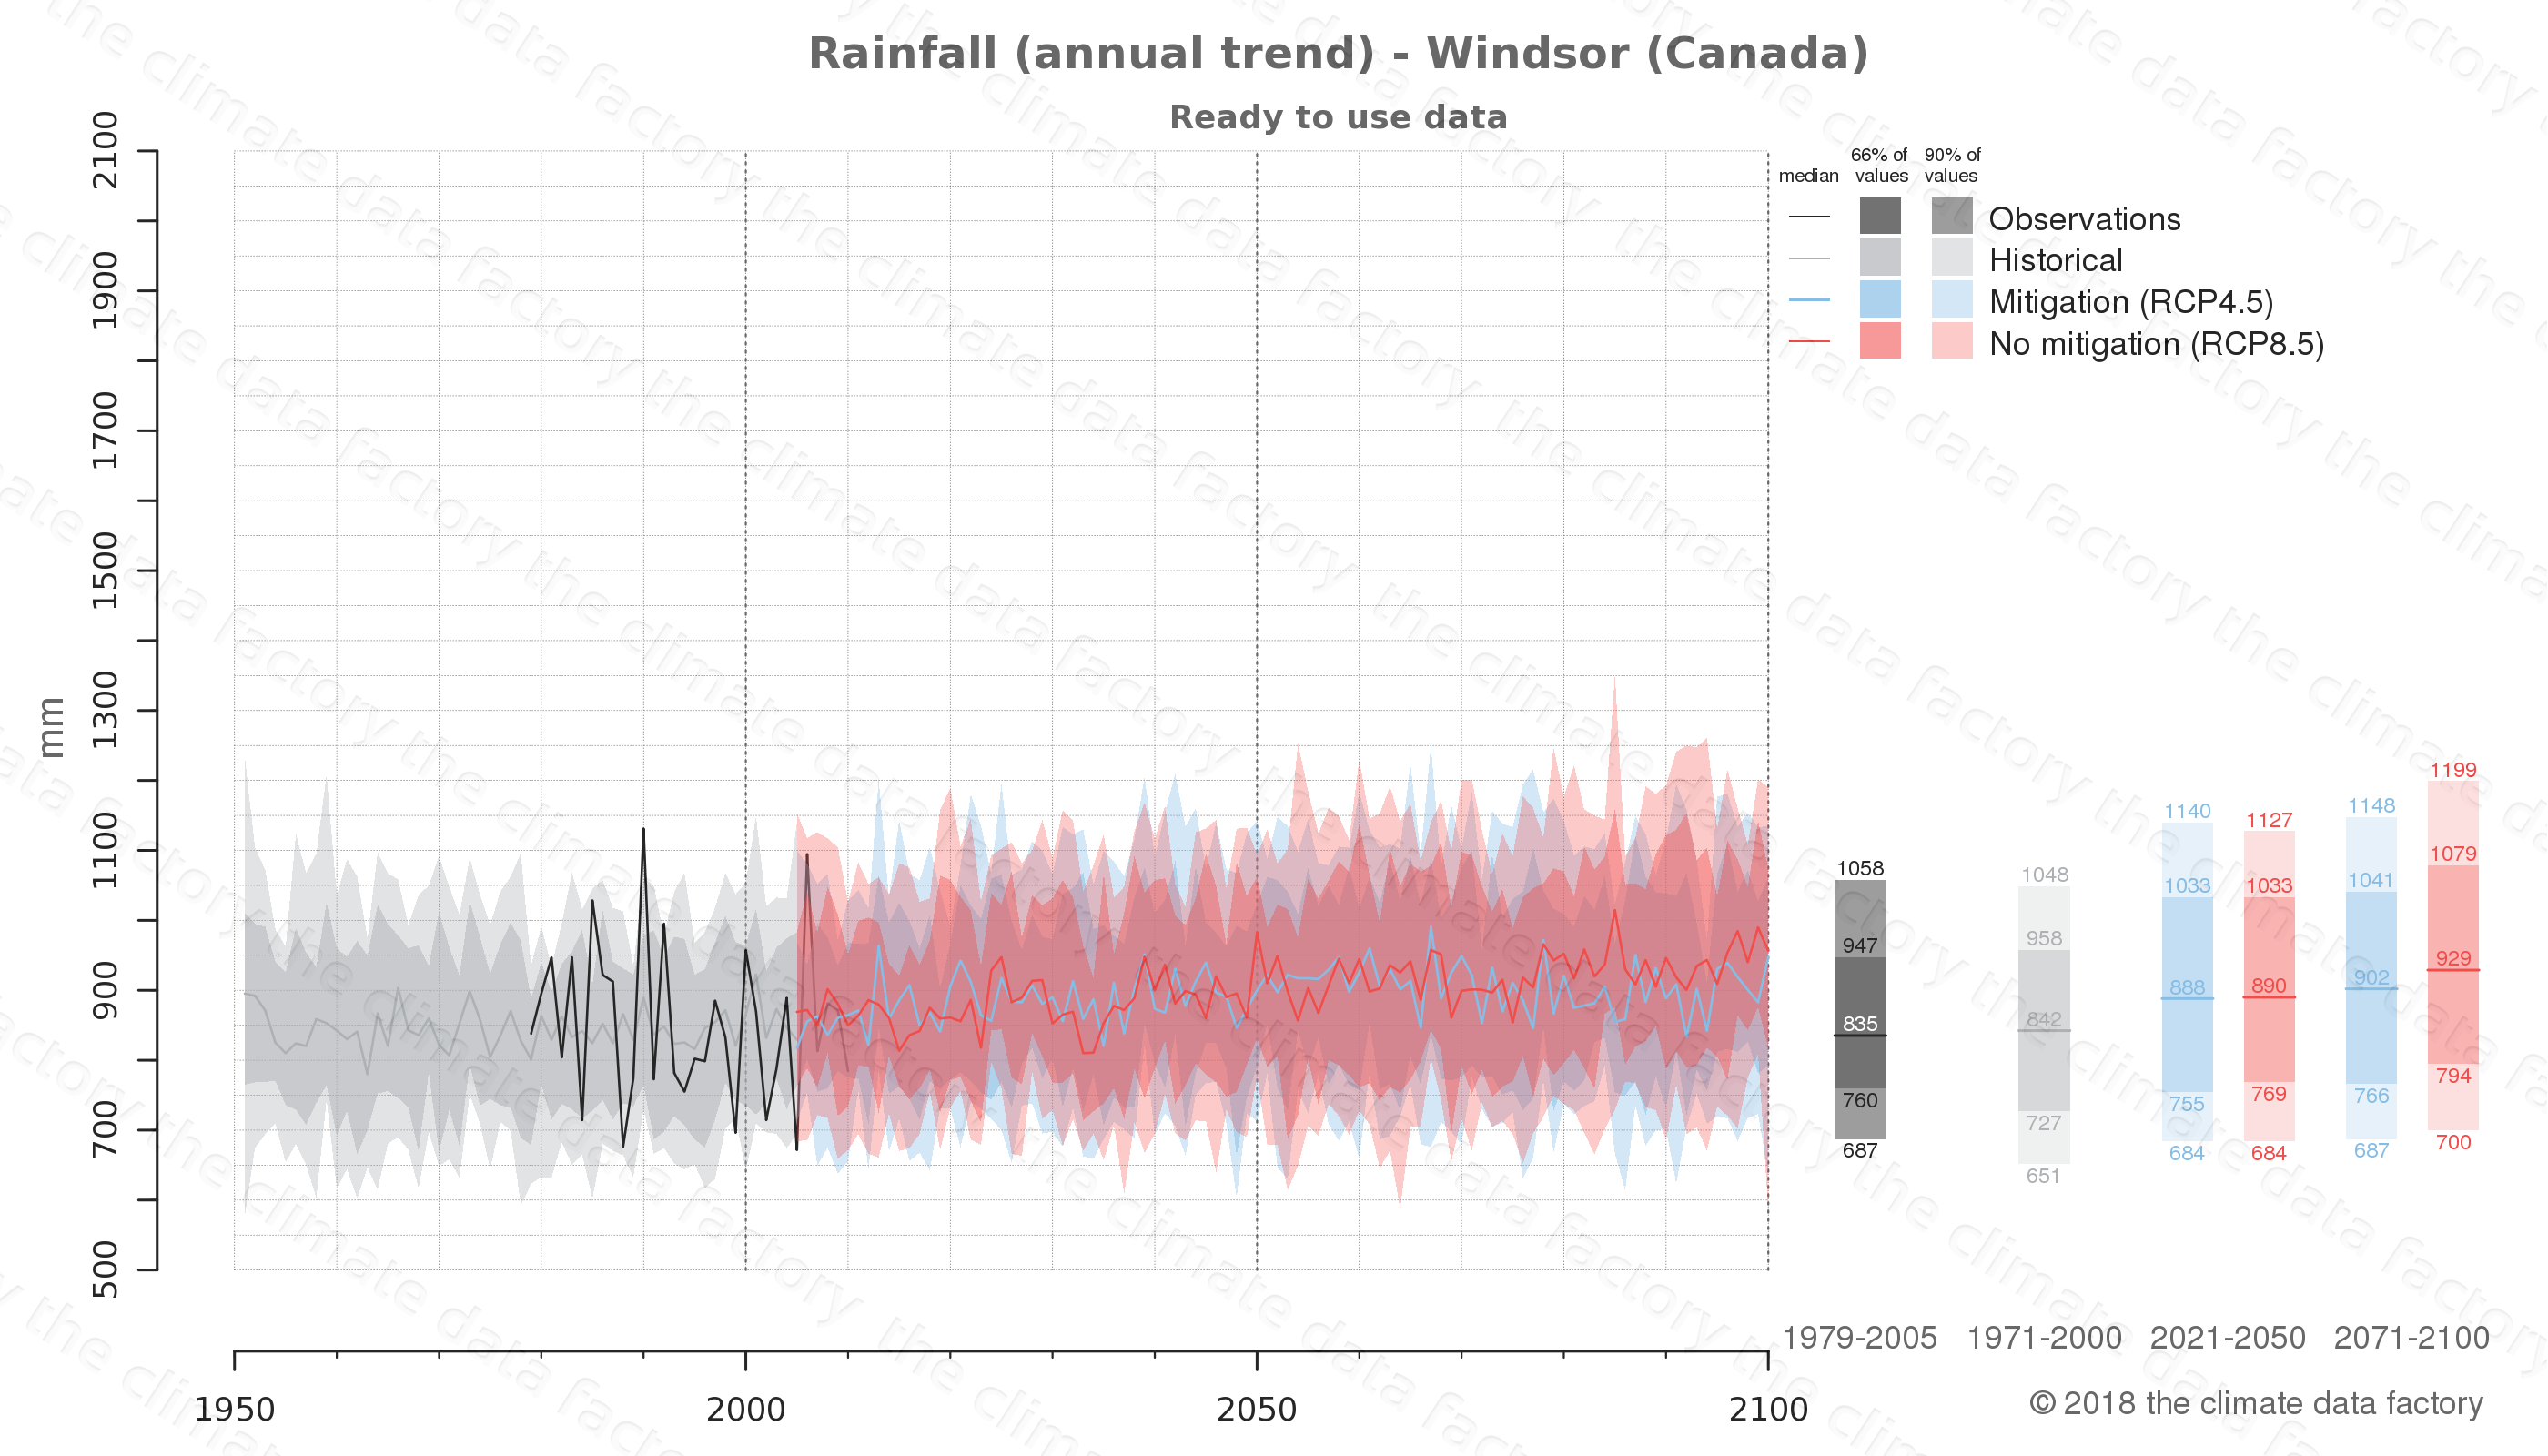 climate change data policy adaptation climate graph city data rainfall windsor canada